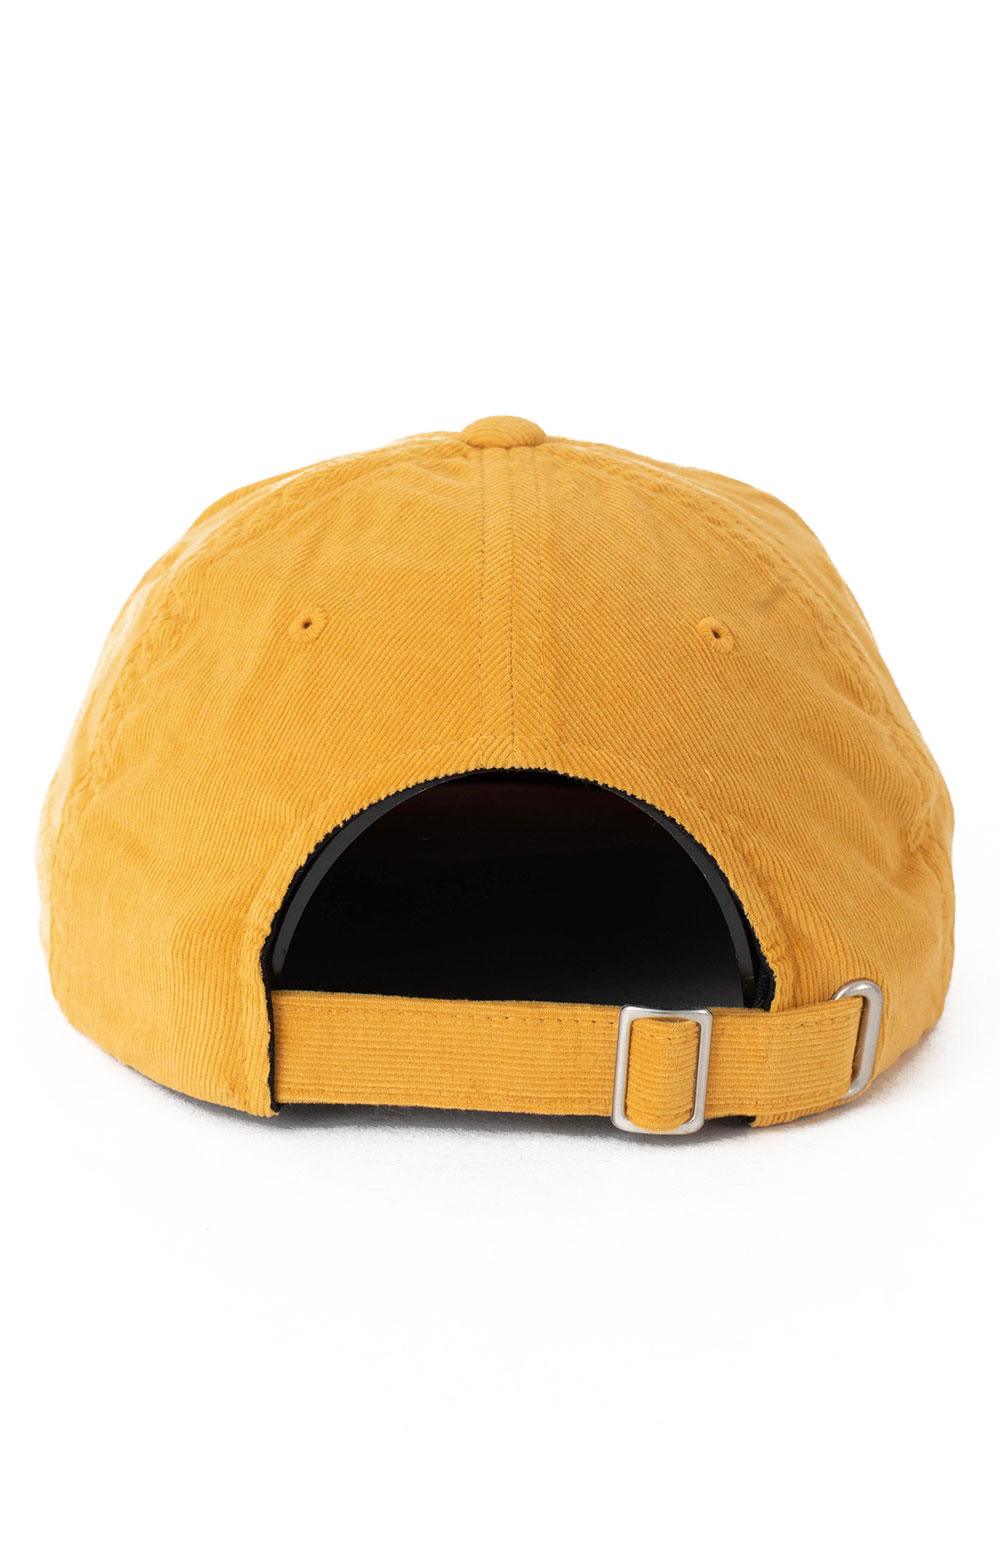 Dawg Polo Cap - Radiant Yellow 4